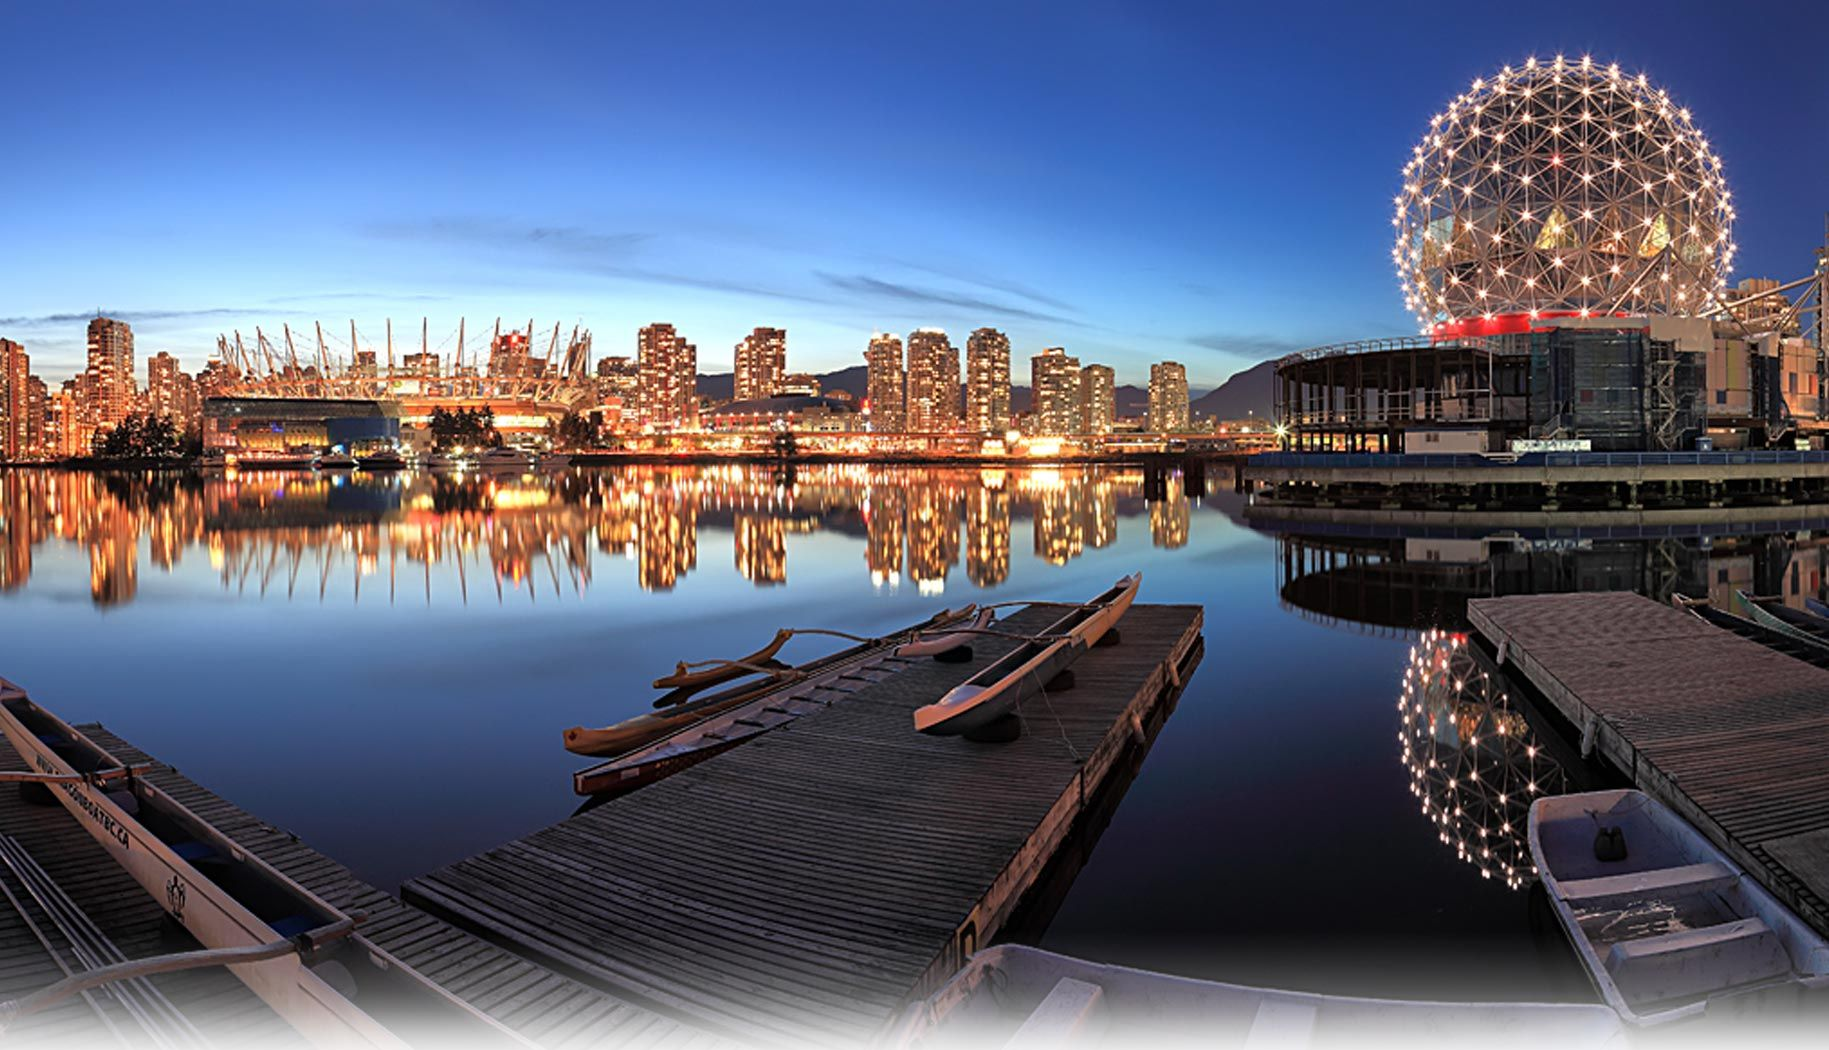 vancouver - Google Search